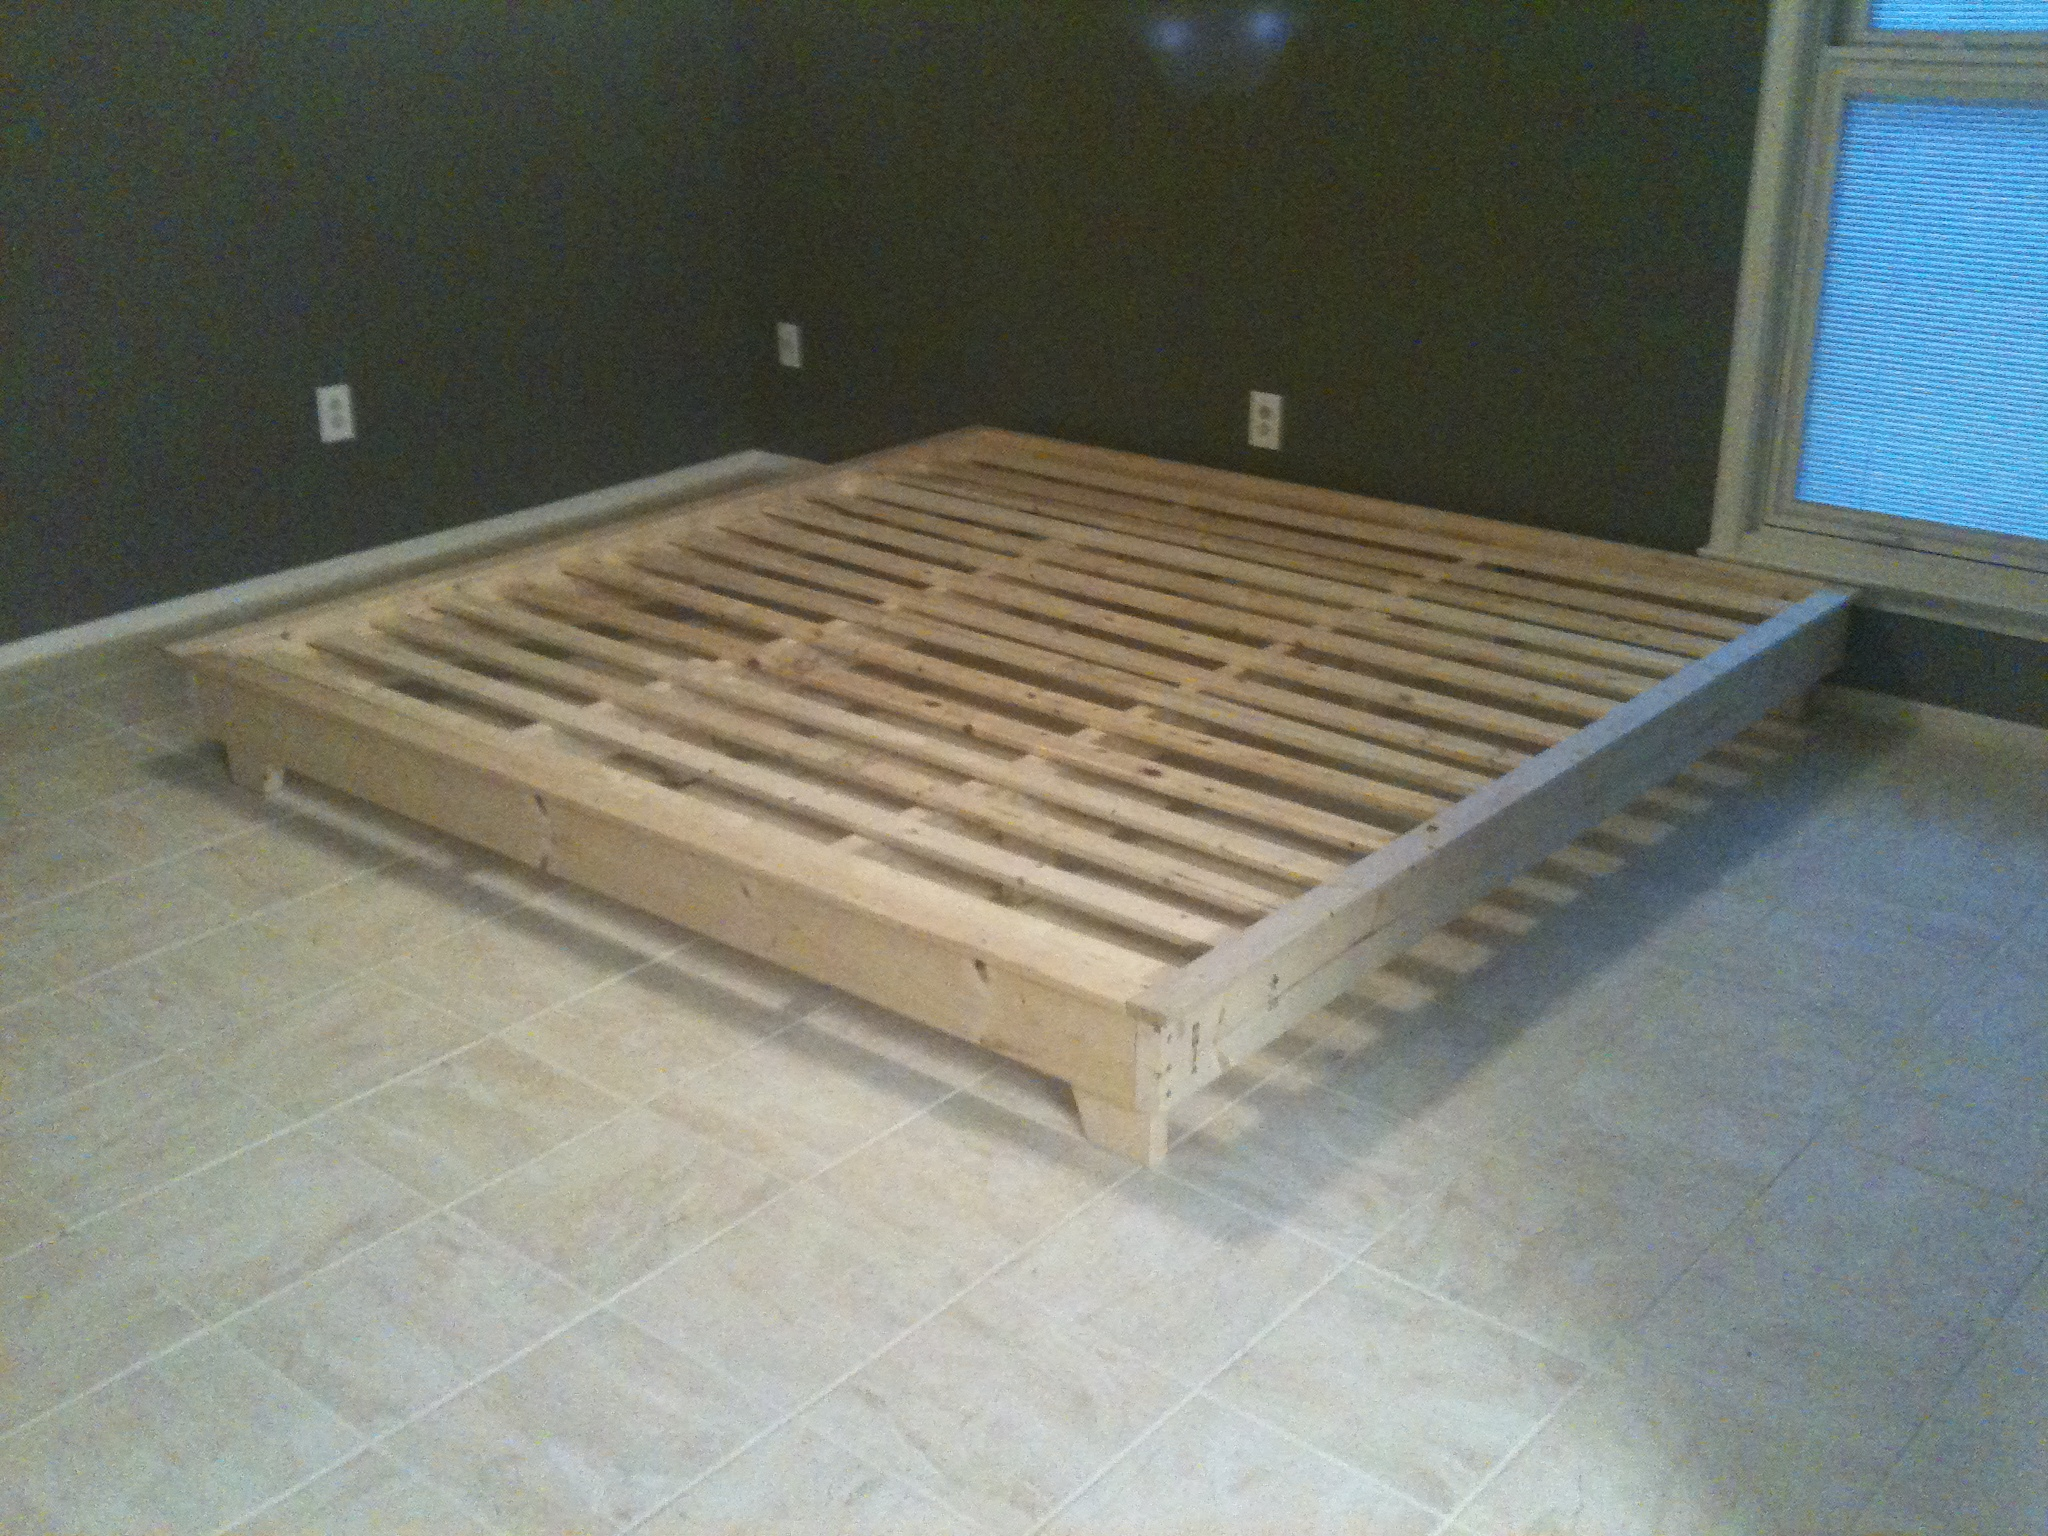 Diy Platform Bed Plans | BED PLANS DIY & BLUEPRINTS